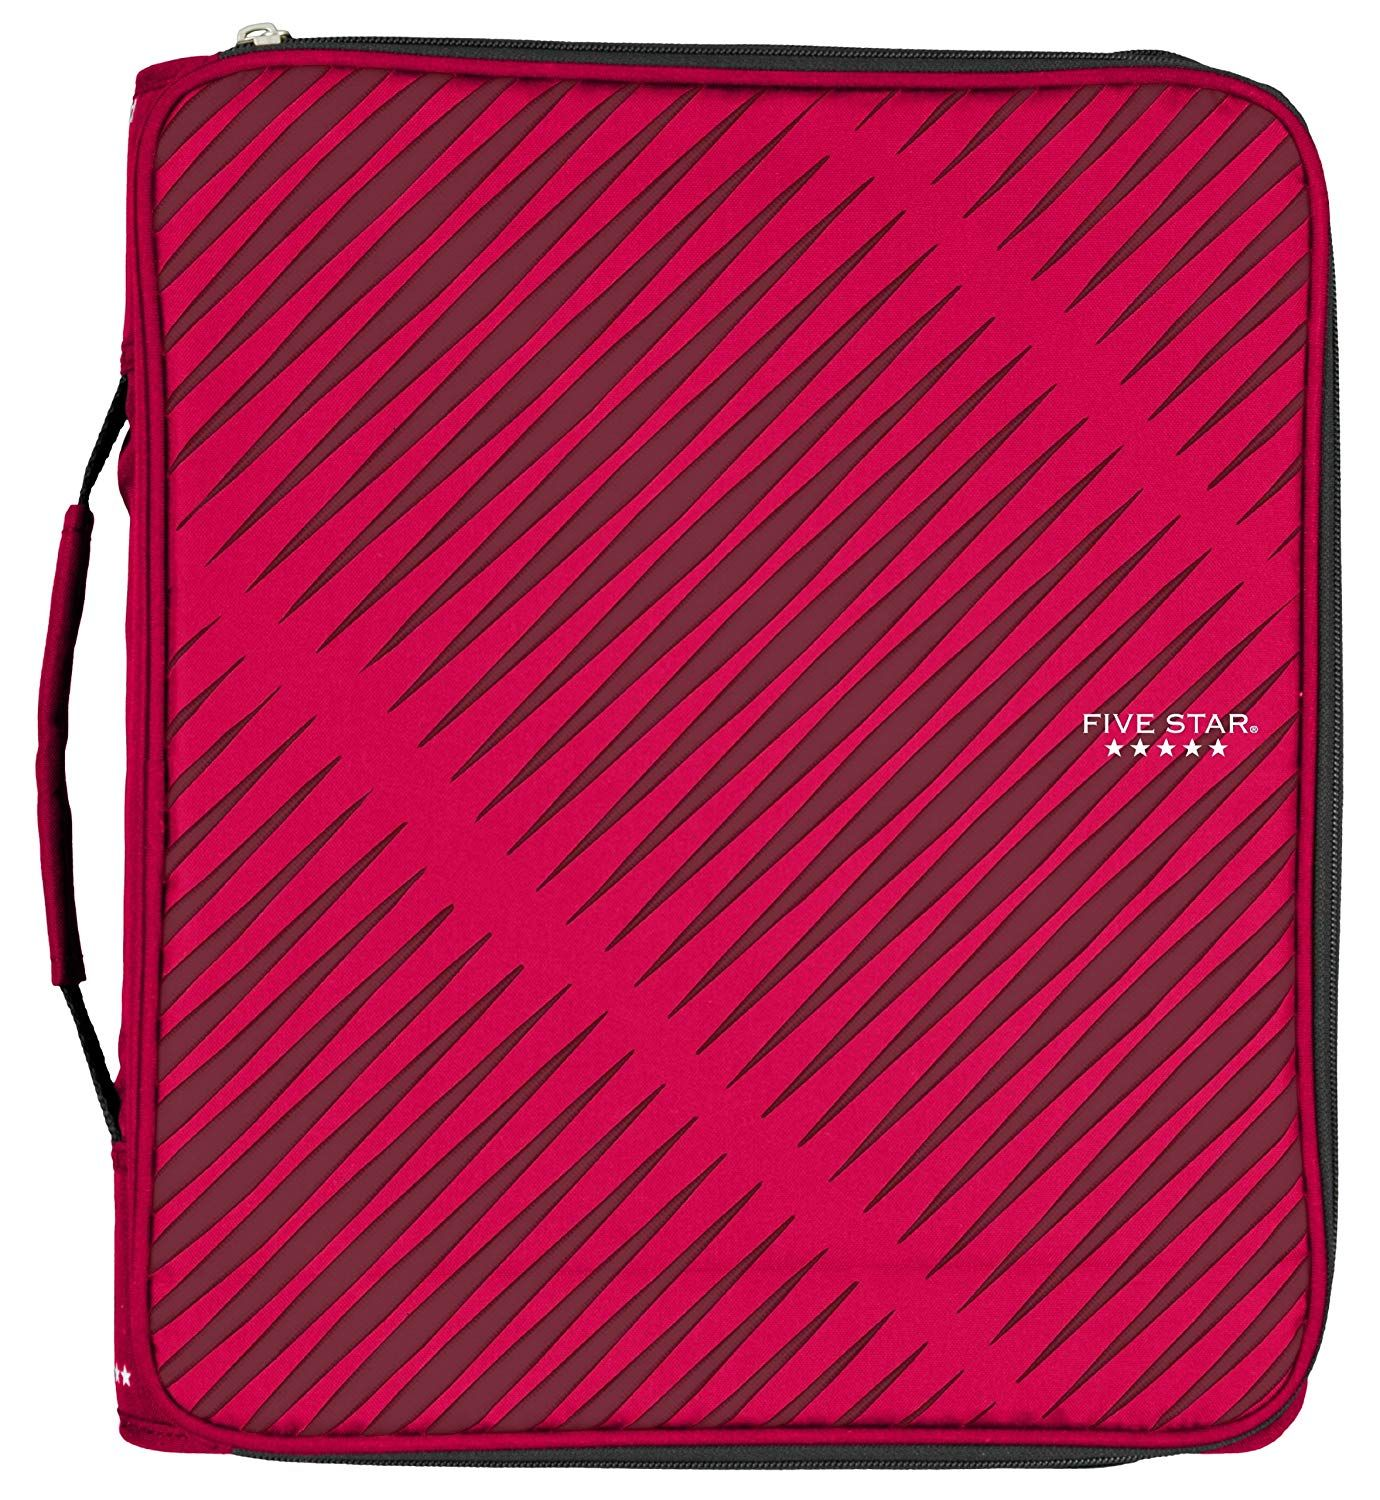 Top 13 Best Binders For College Review In 2020